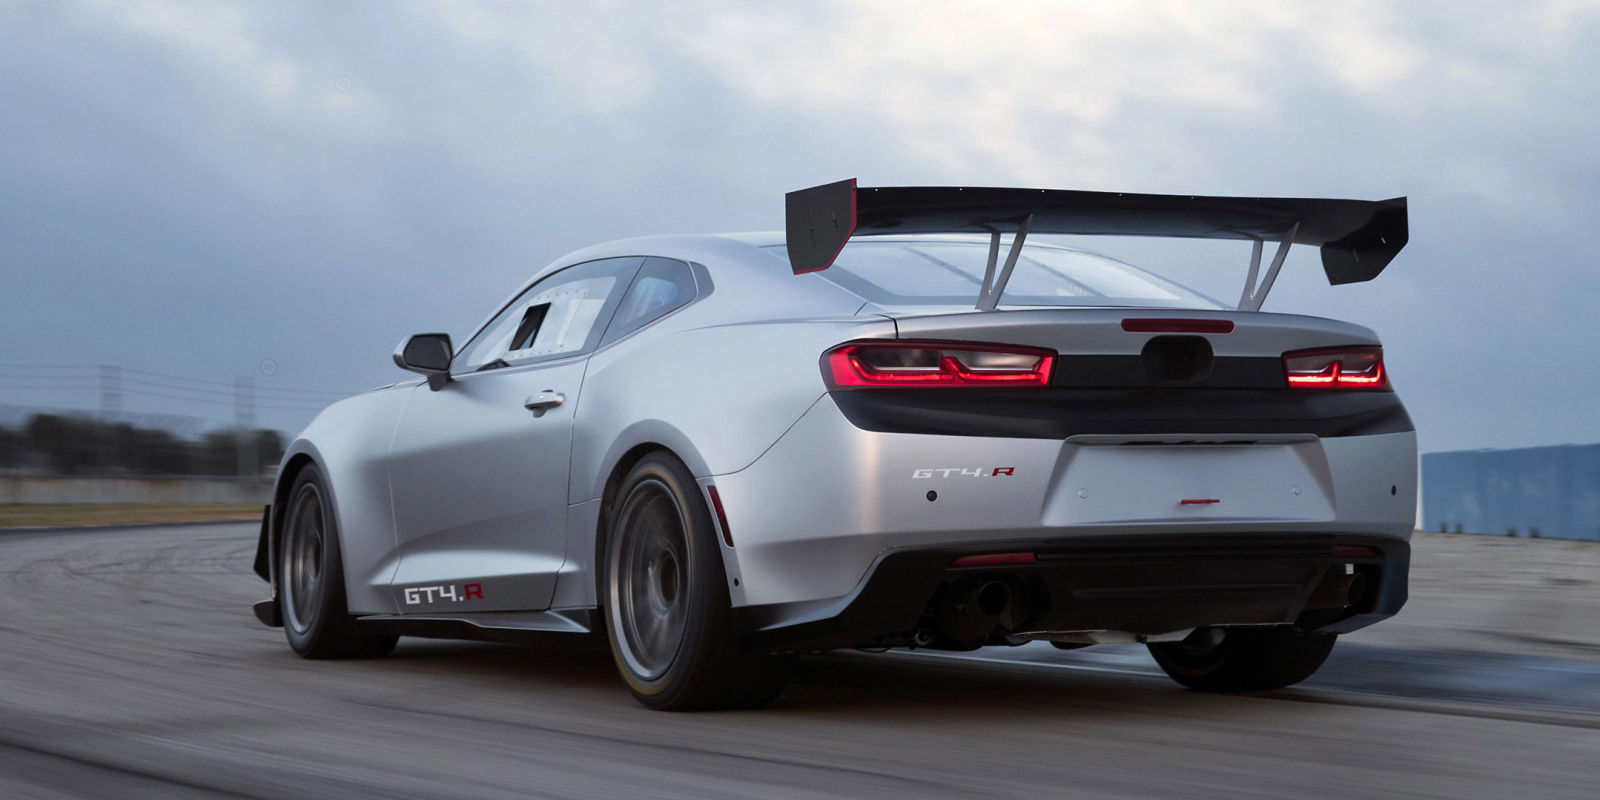 Camaro Gt4r >> Chevy's New ZL1-Based Camaro GT4.R Ready To Face The World's Best